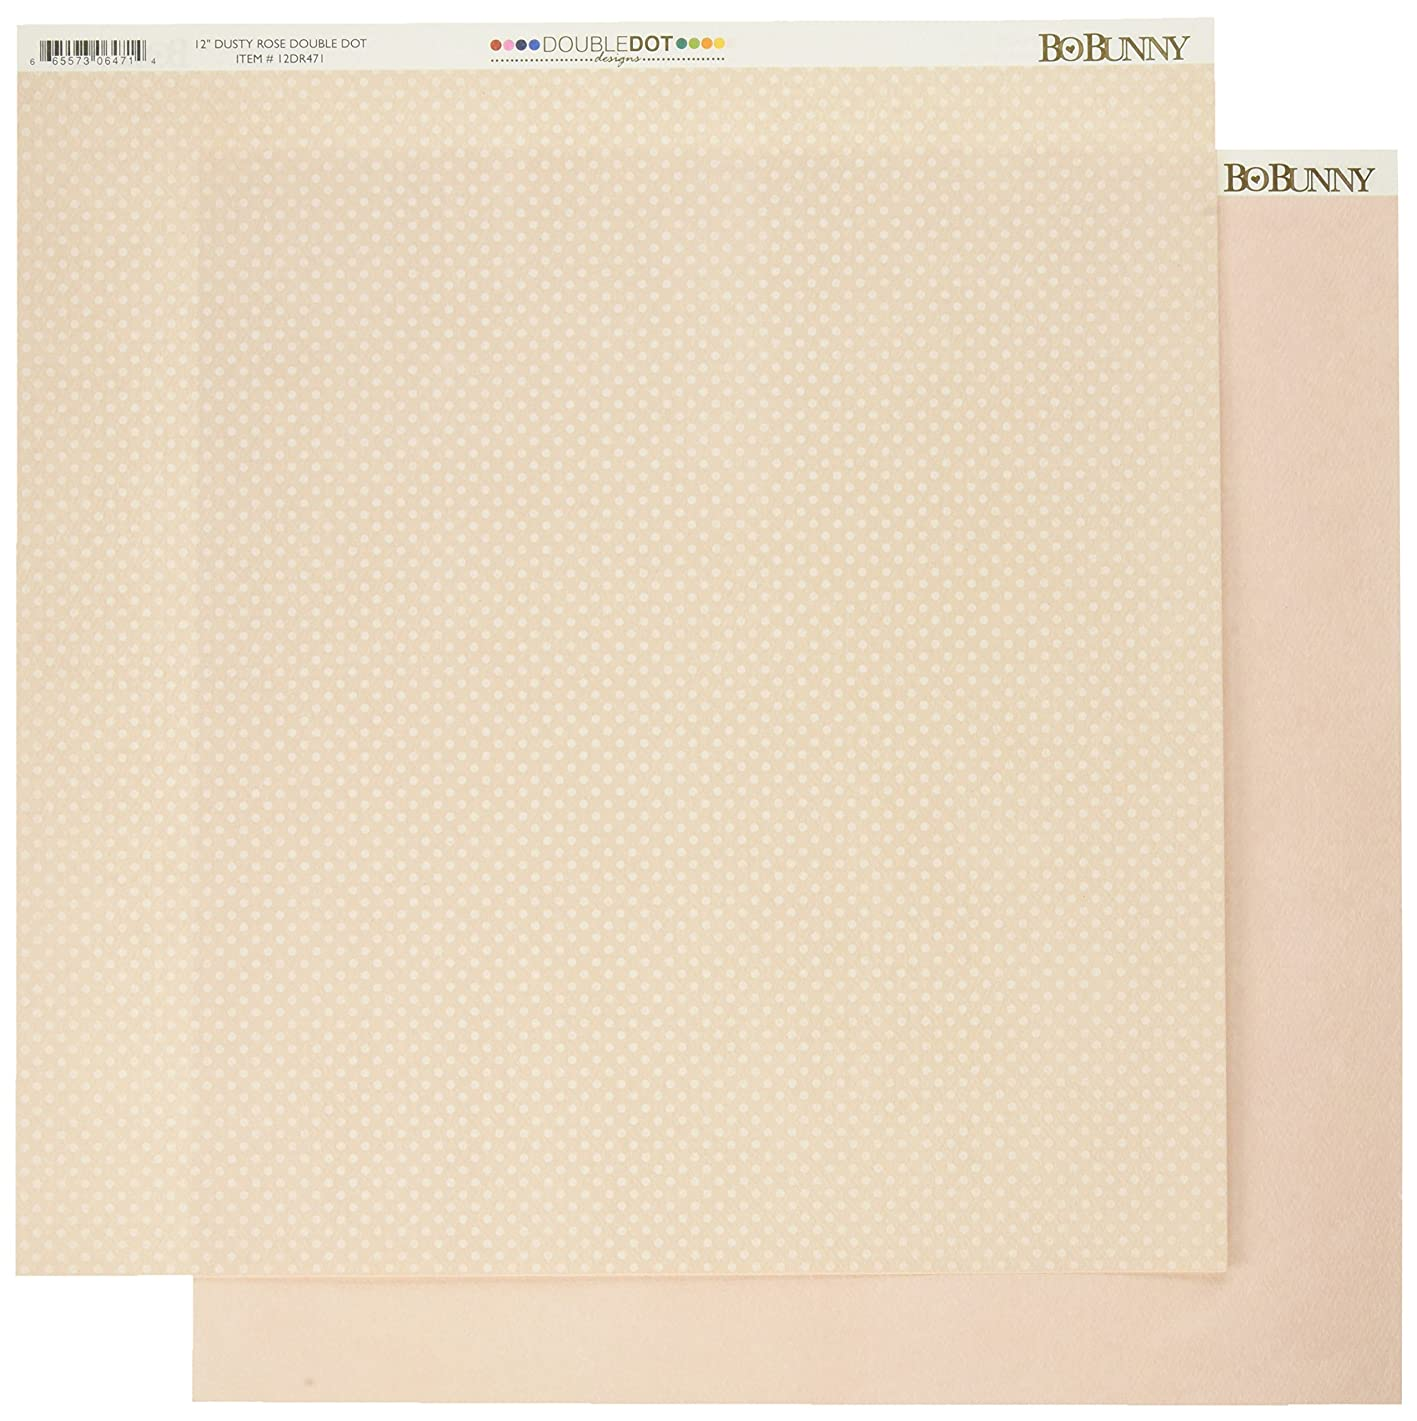 Bo Bunny 12DR471 Double Dot Double-Sided Textured Cardstock (25 Sheets Per Pack), 12